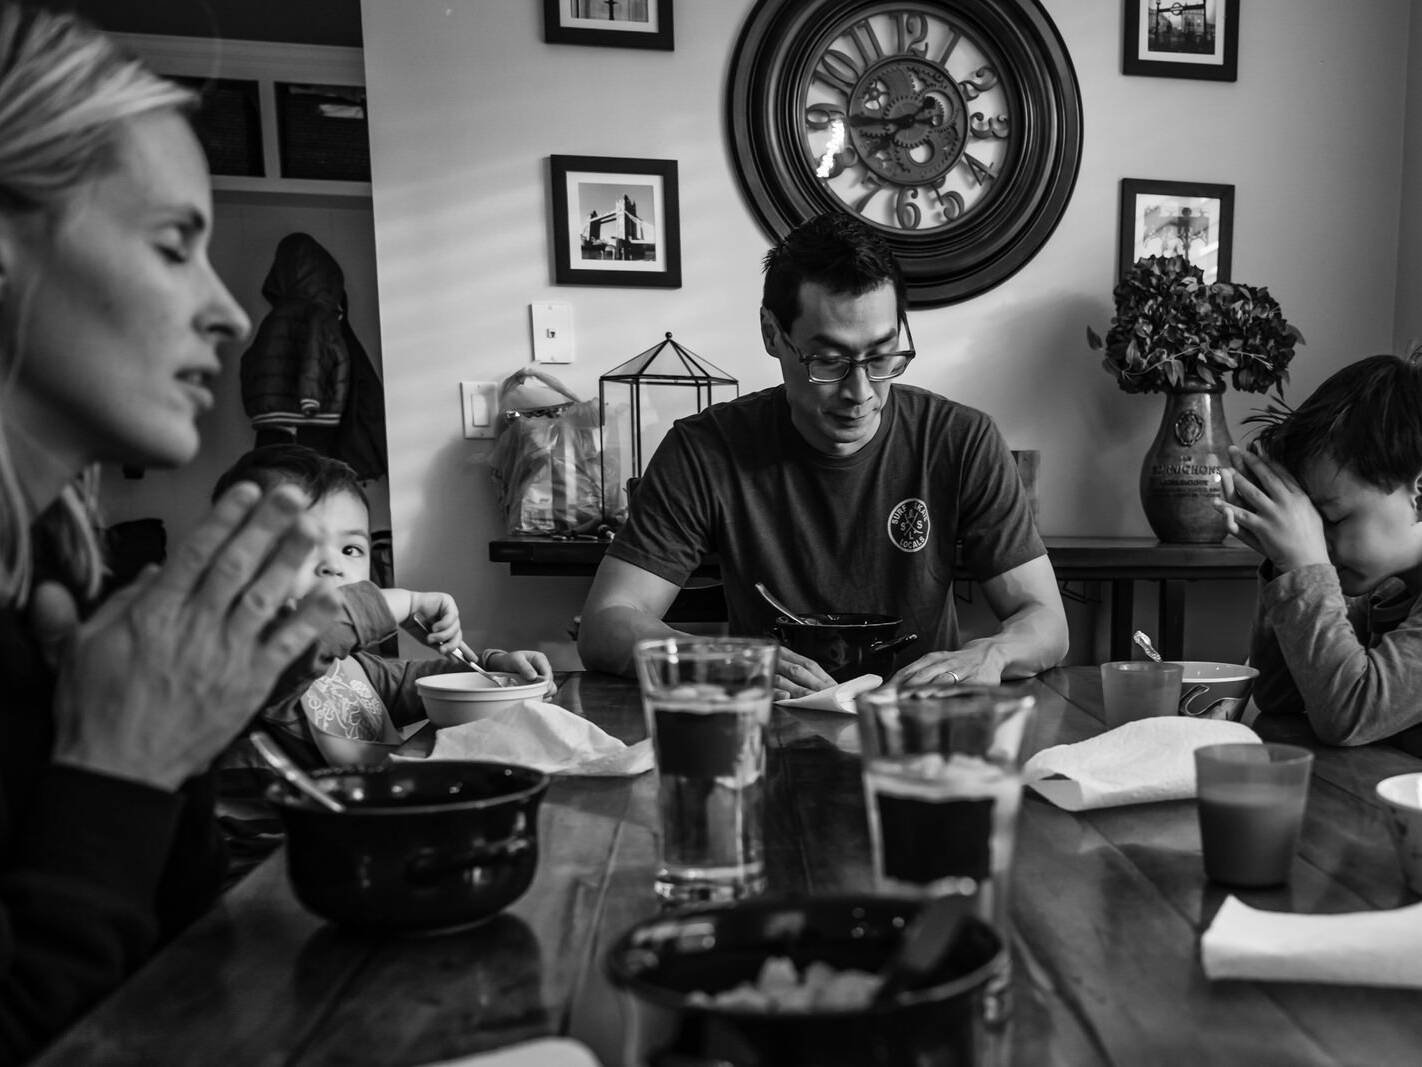 dinner prayers at the family table